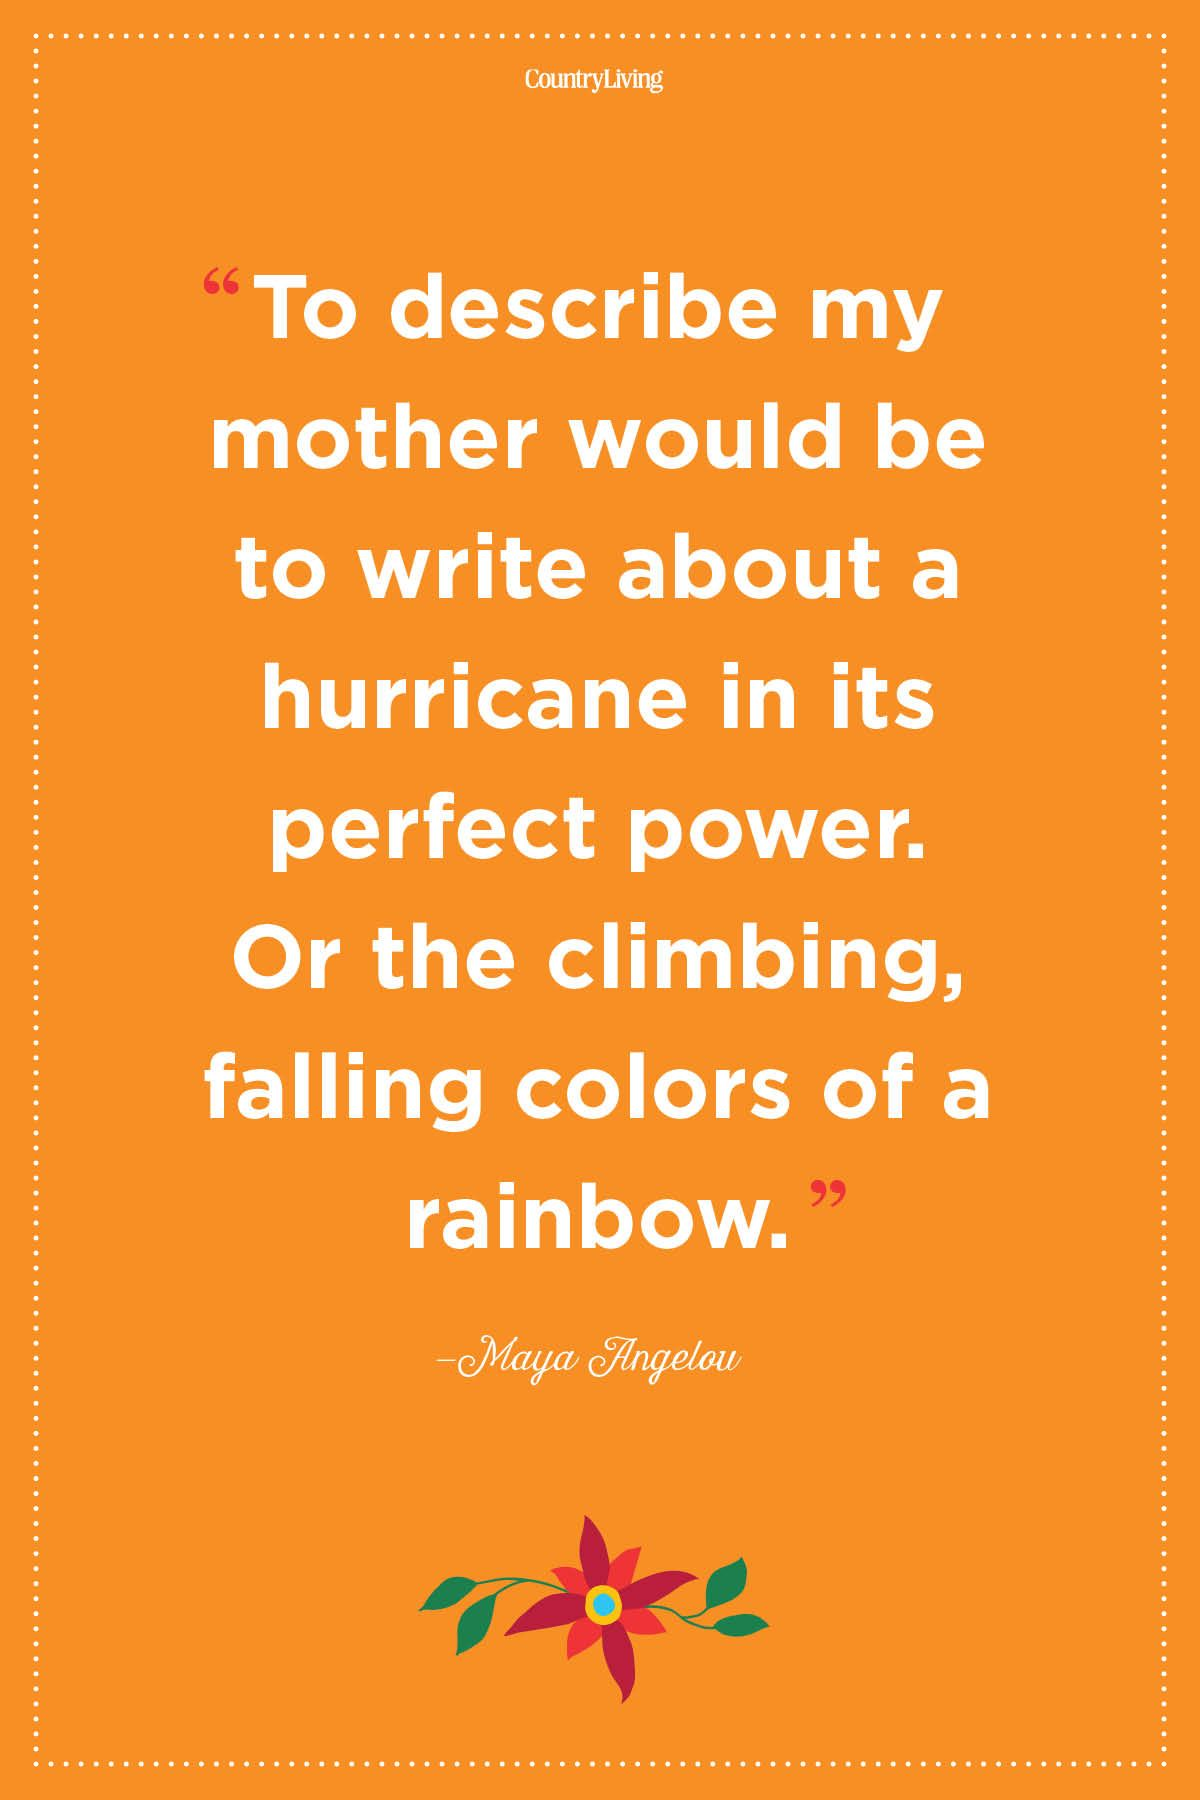 Mother and daughter bonding quotes-8413